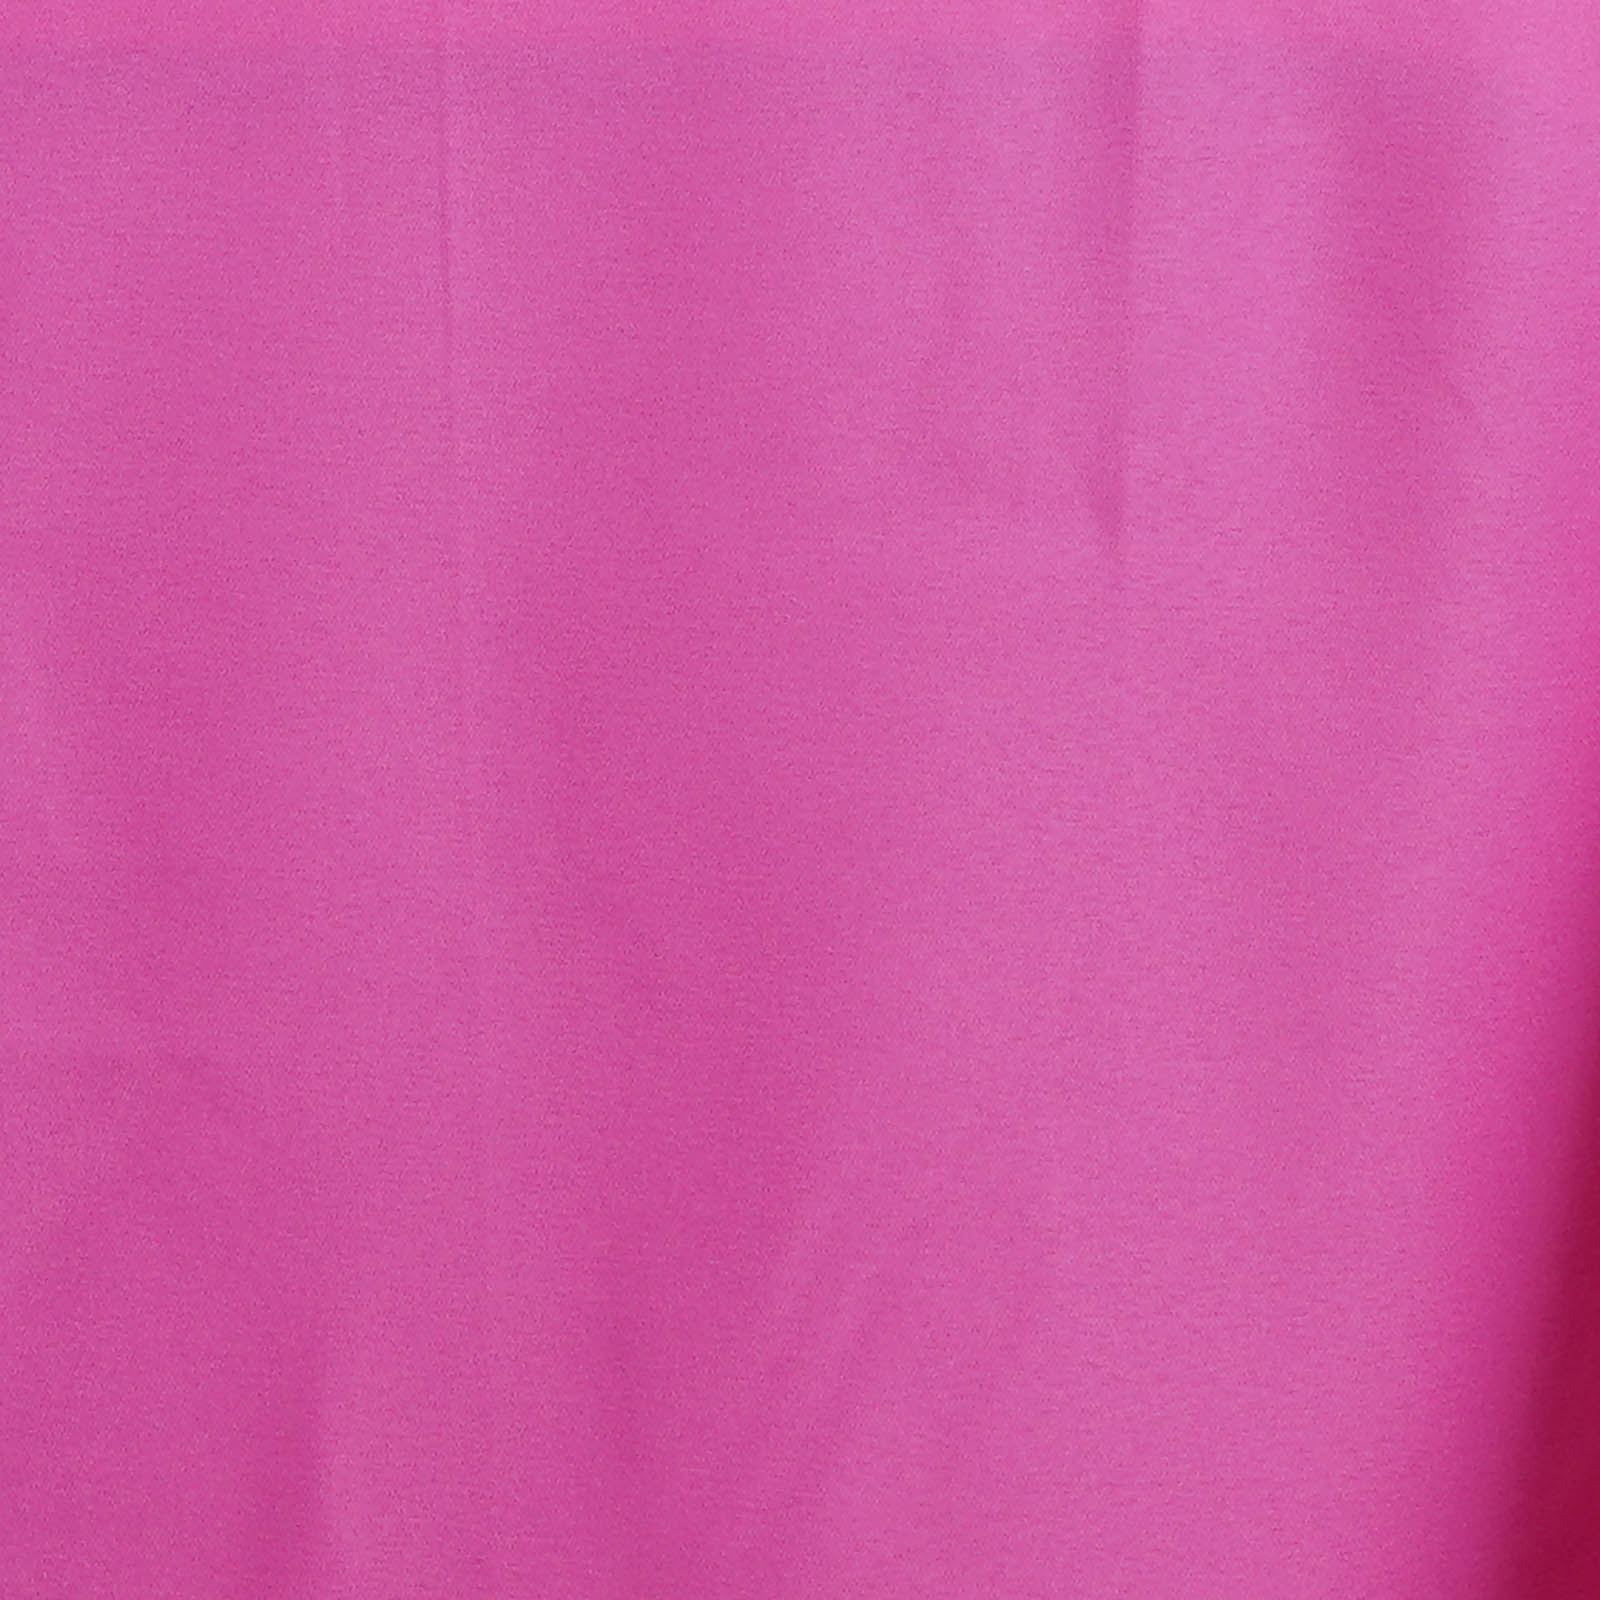 90x132-034-Polyester-Rectangle-Tablecloths-For-Wedding-Party-Banquet-Events thumbnail 20